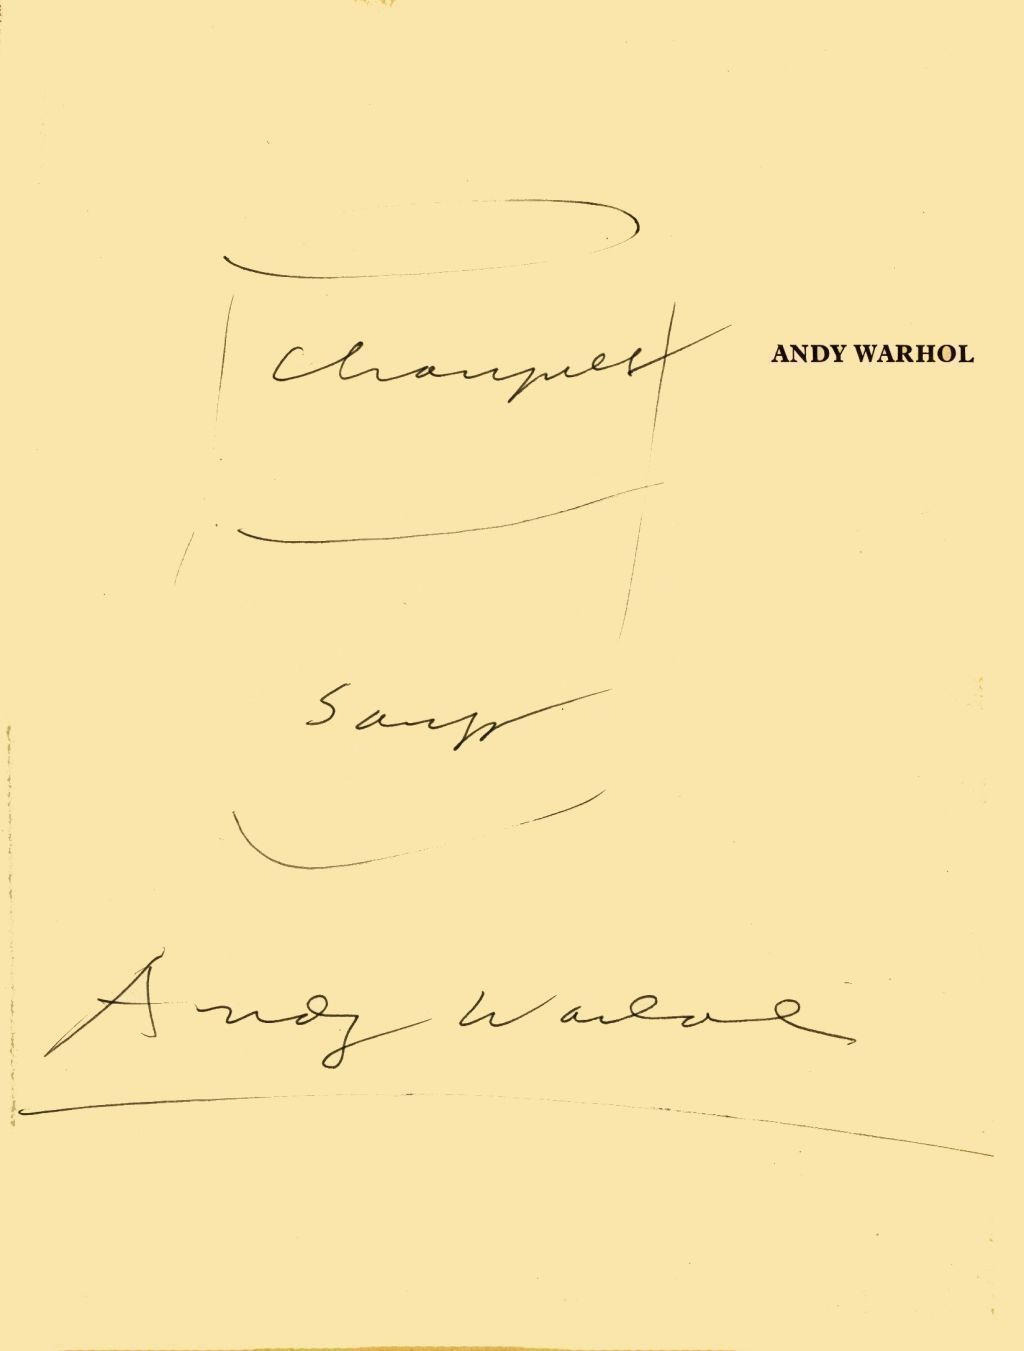 andy warhol essay thesis This essay was written for the partnership between the andy warhol foundation for the visual arts and christie's they are publishing a three-part catalogue on october 31st, which will feature.